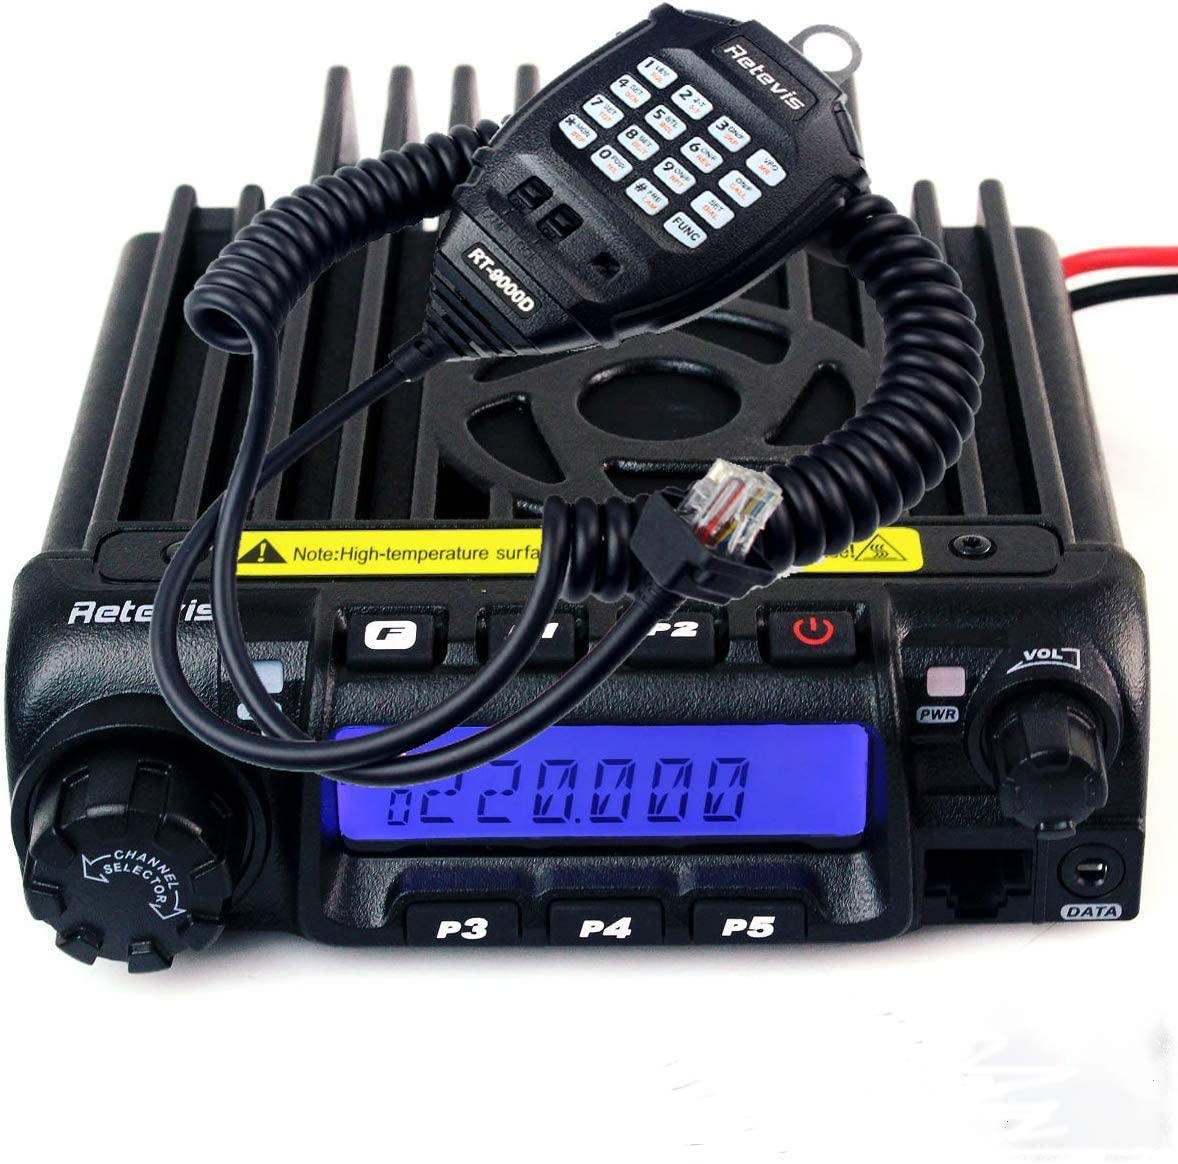 Retevis RT-9000D VHF Mobile Radio Transceiver 50 CTCSS 1024 DCS Car Mobile Radio 200CH Amateur Ham Radio Transceiver 1 Pack